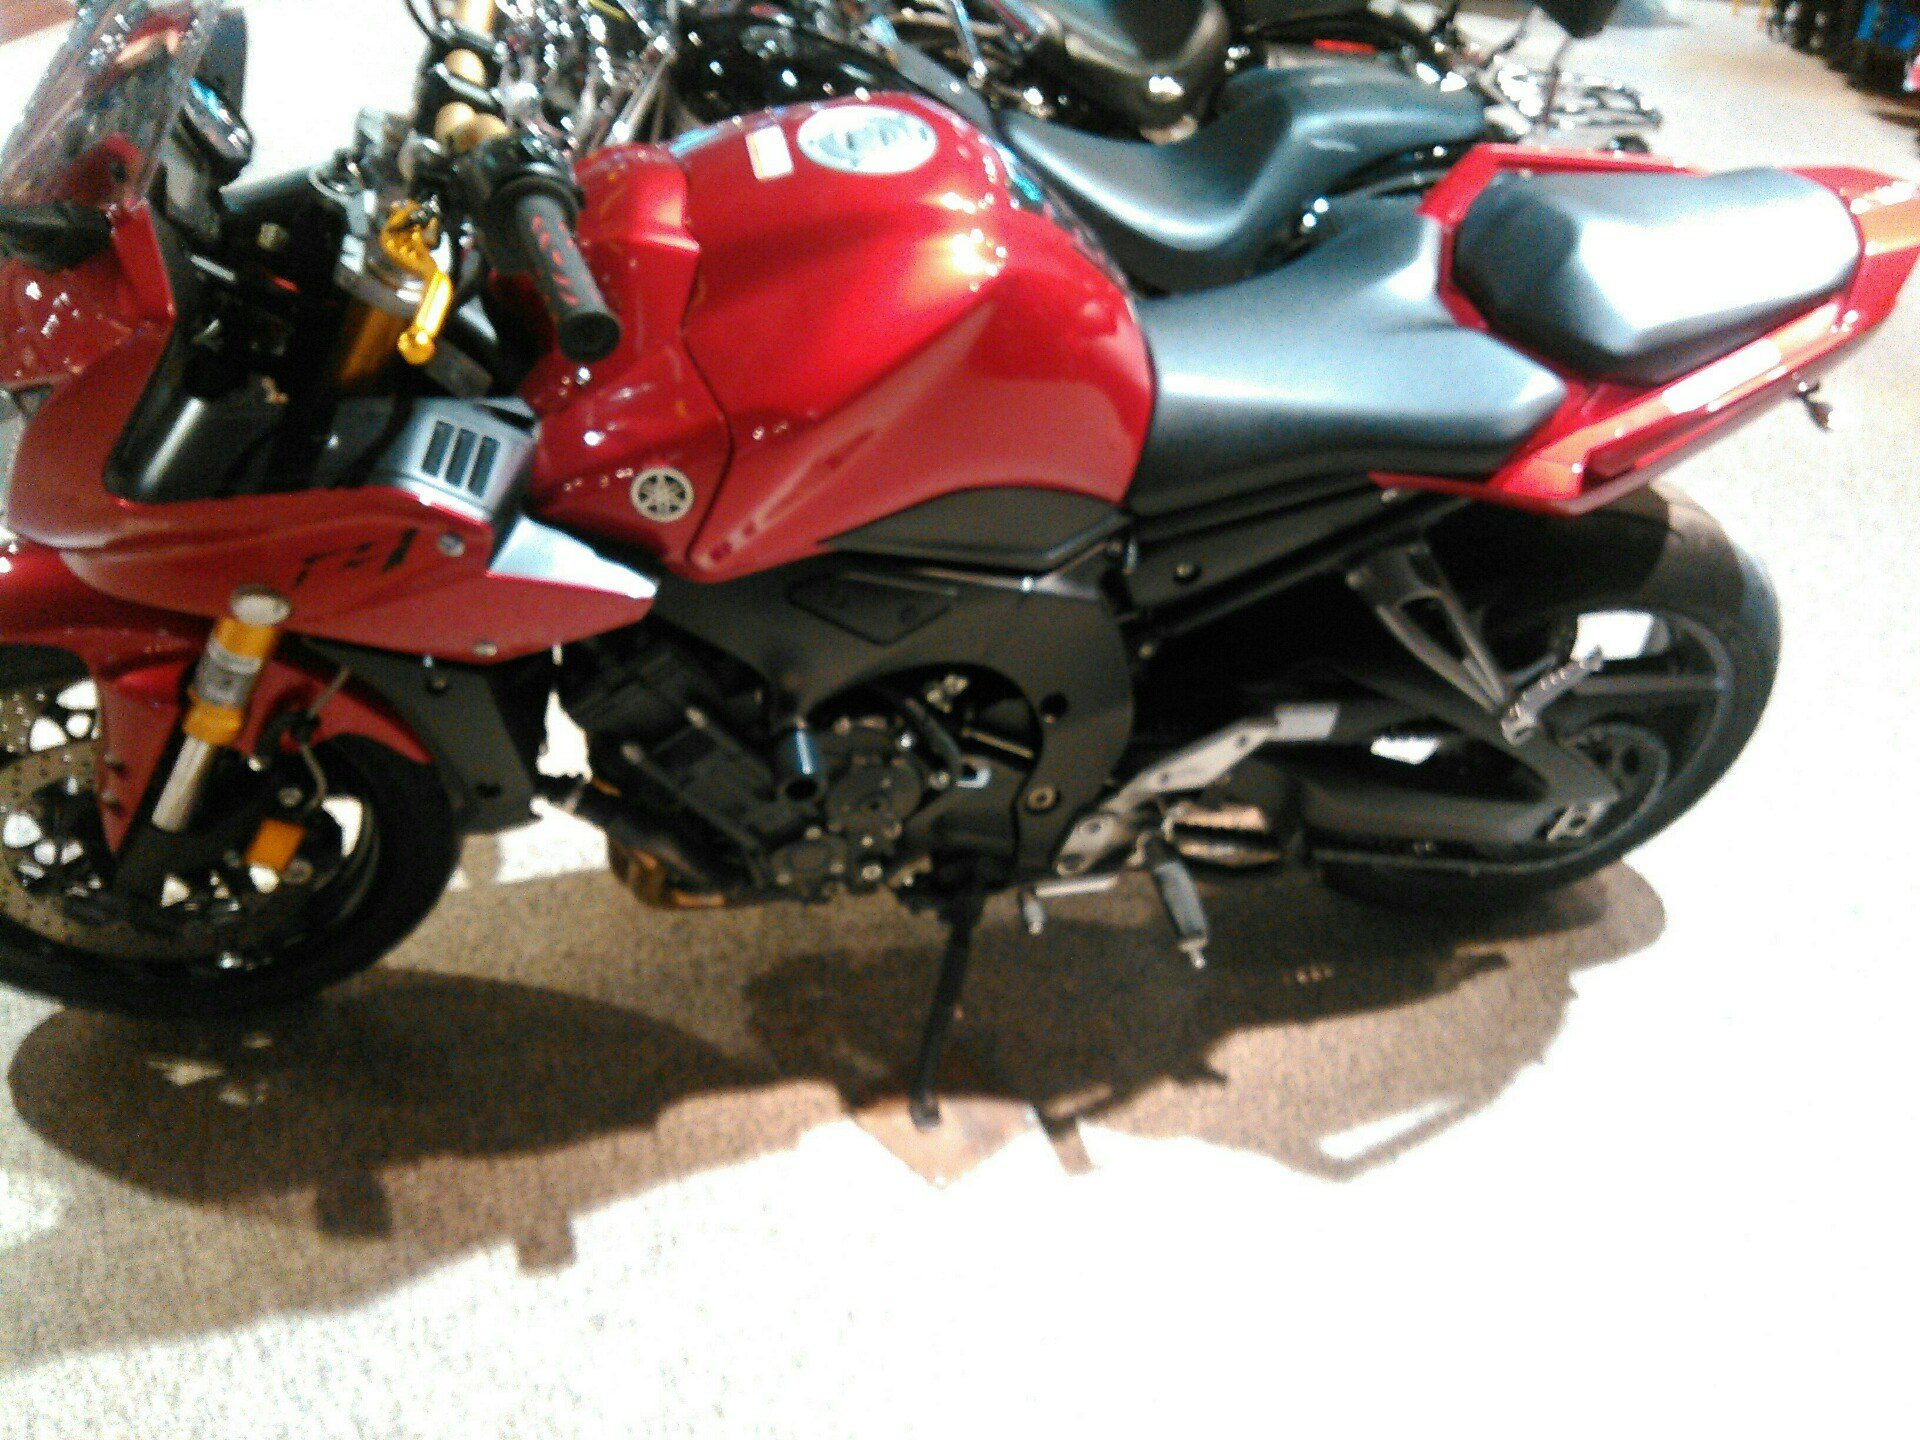 Used 2006 Yamaha FZ1 Motorcycles in Dansville, NY | Stock Number: U00907